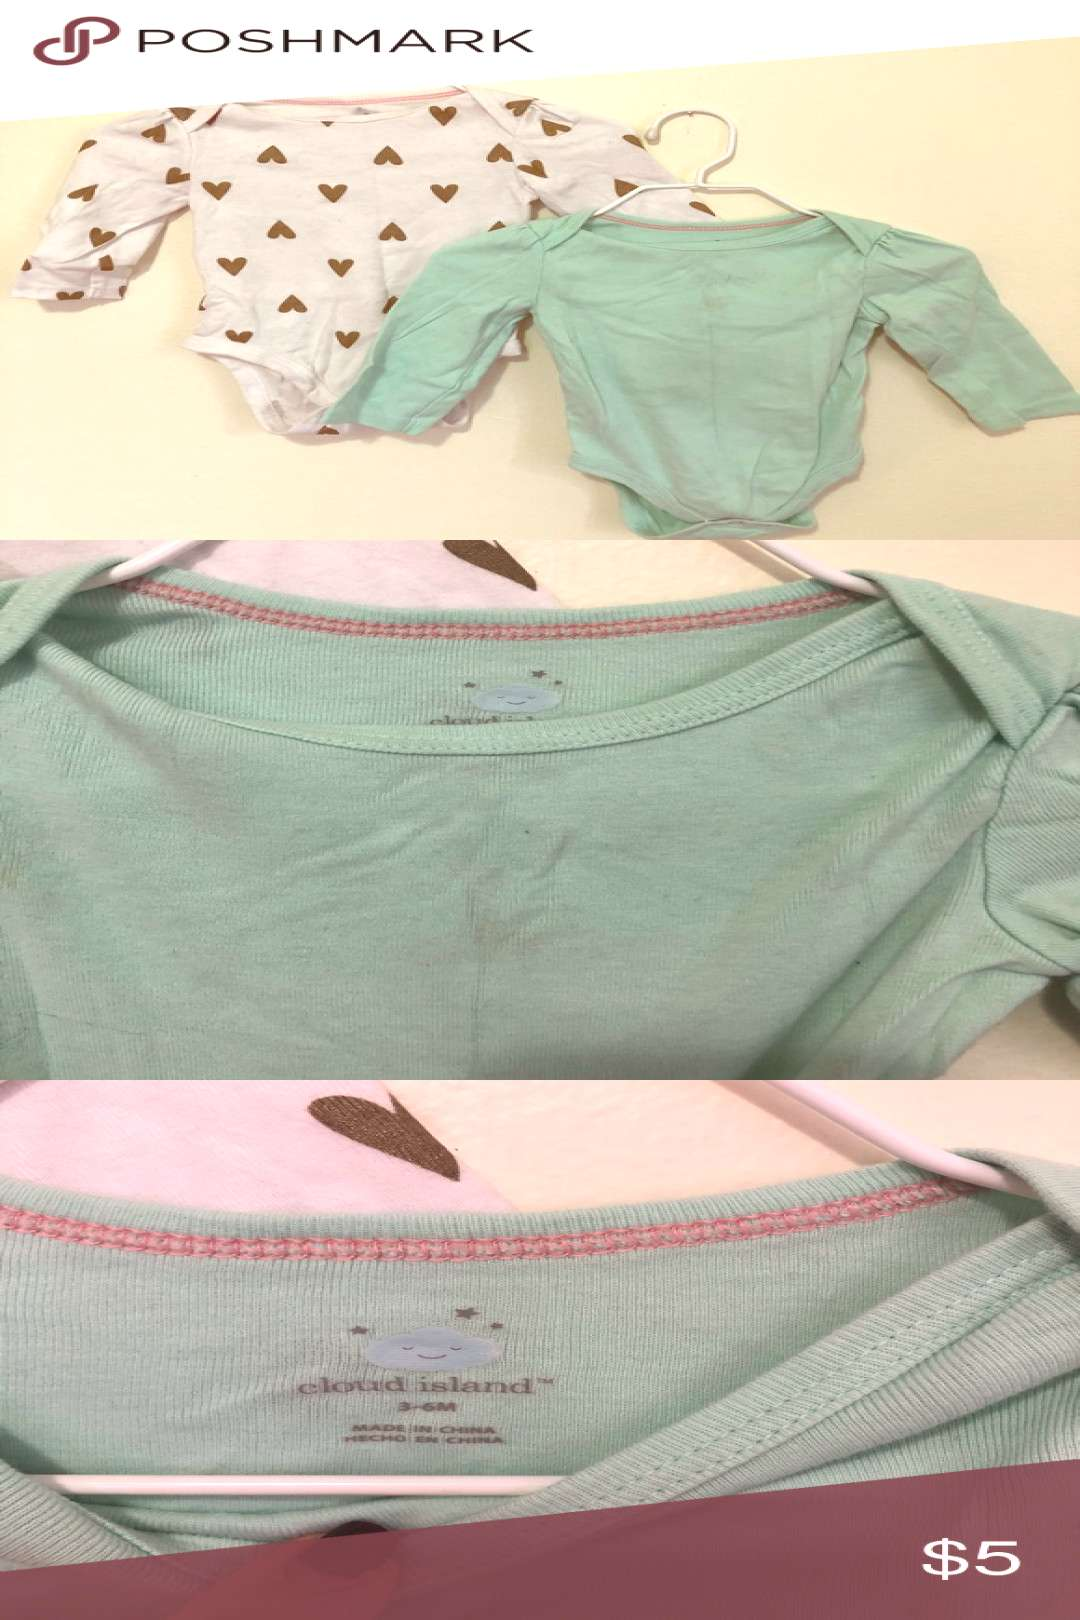 3-6 Months Cloud Island Set of Two Onesies Girl Blue onesie has some discoloration shown in picture